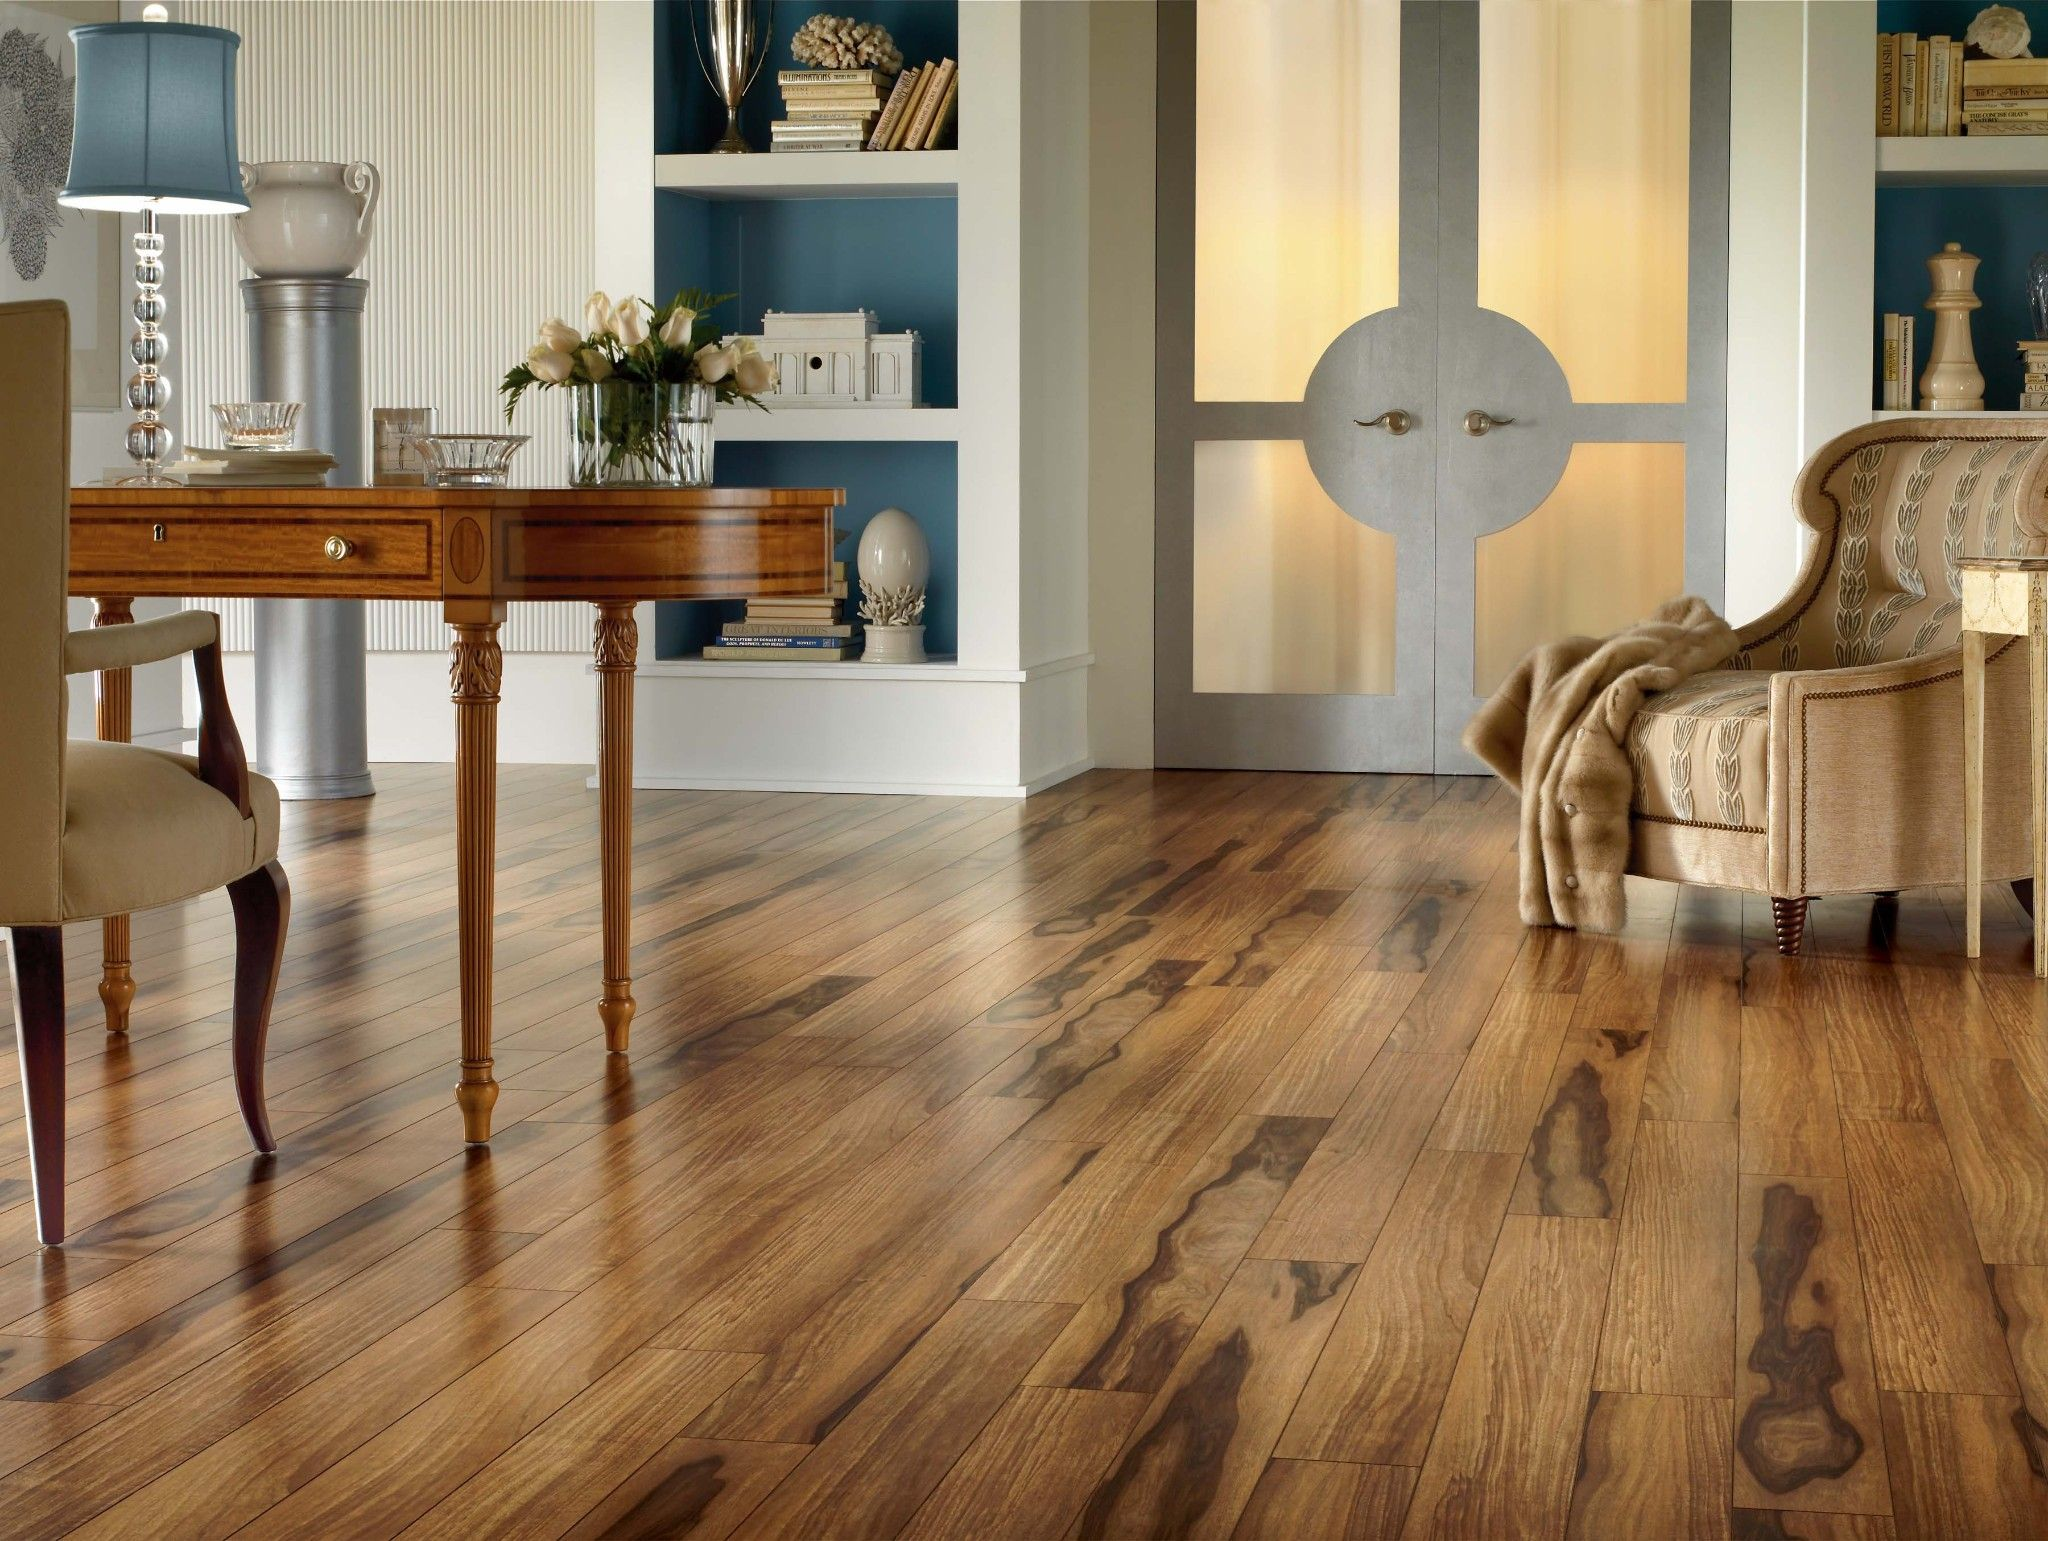 White Oak Hardwood Flooring And White Living Room With Brown